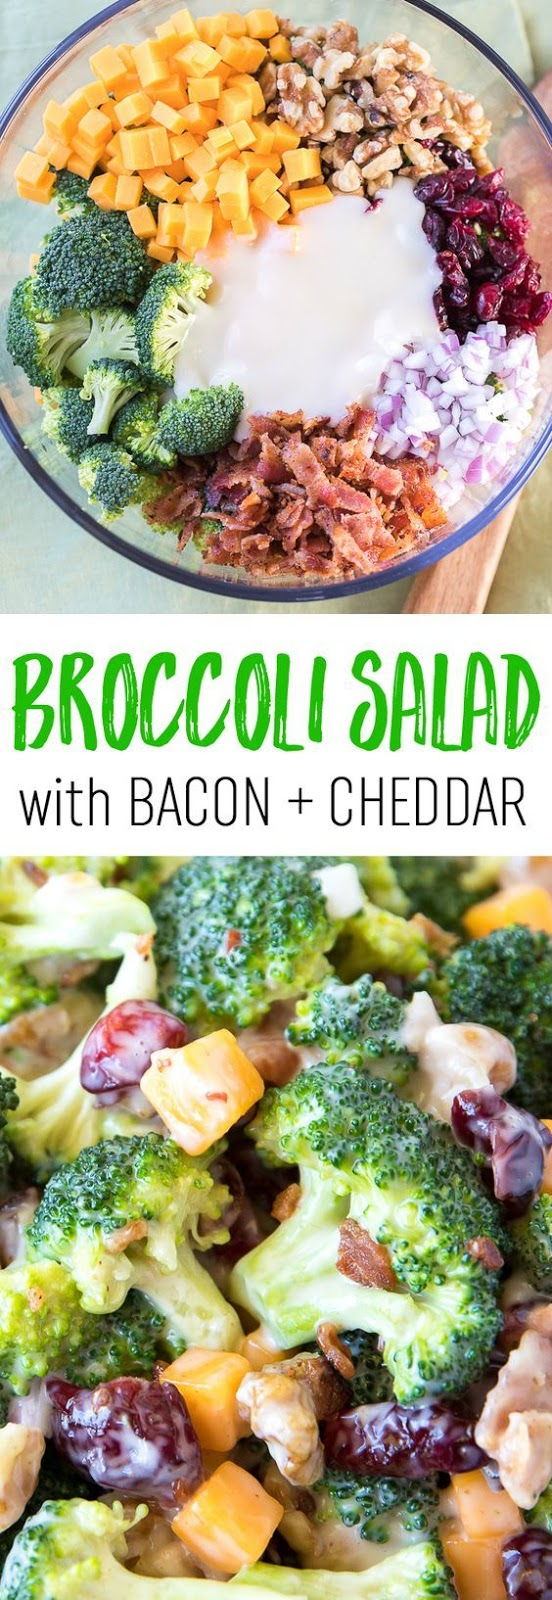 This sweet and delicious broccoli salad is easy to make and loaded with flavor and crunch.